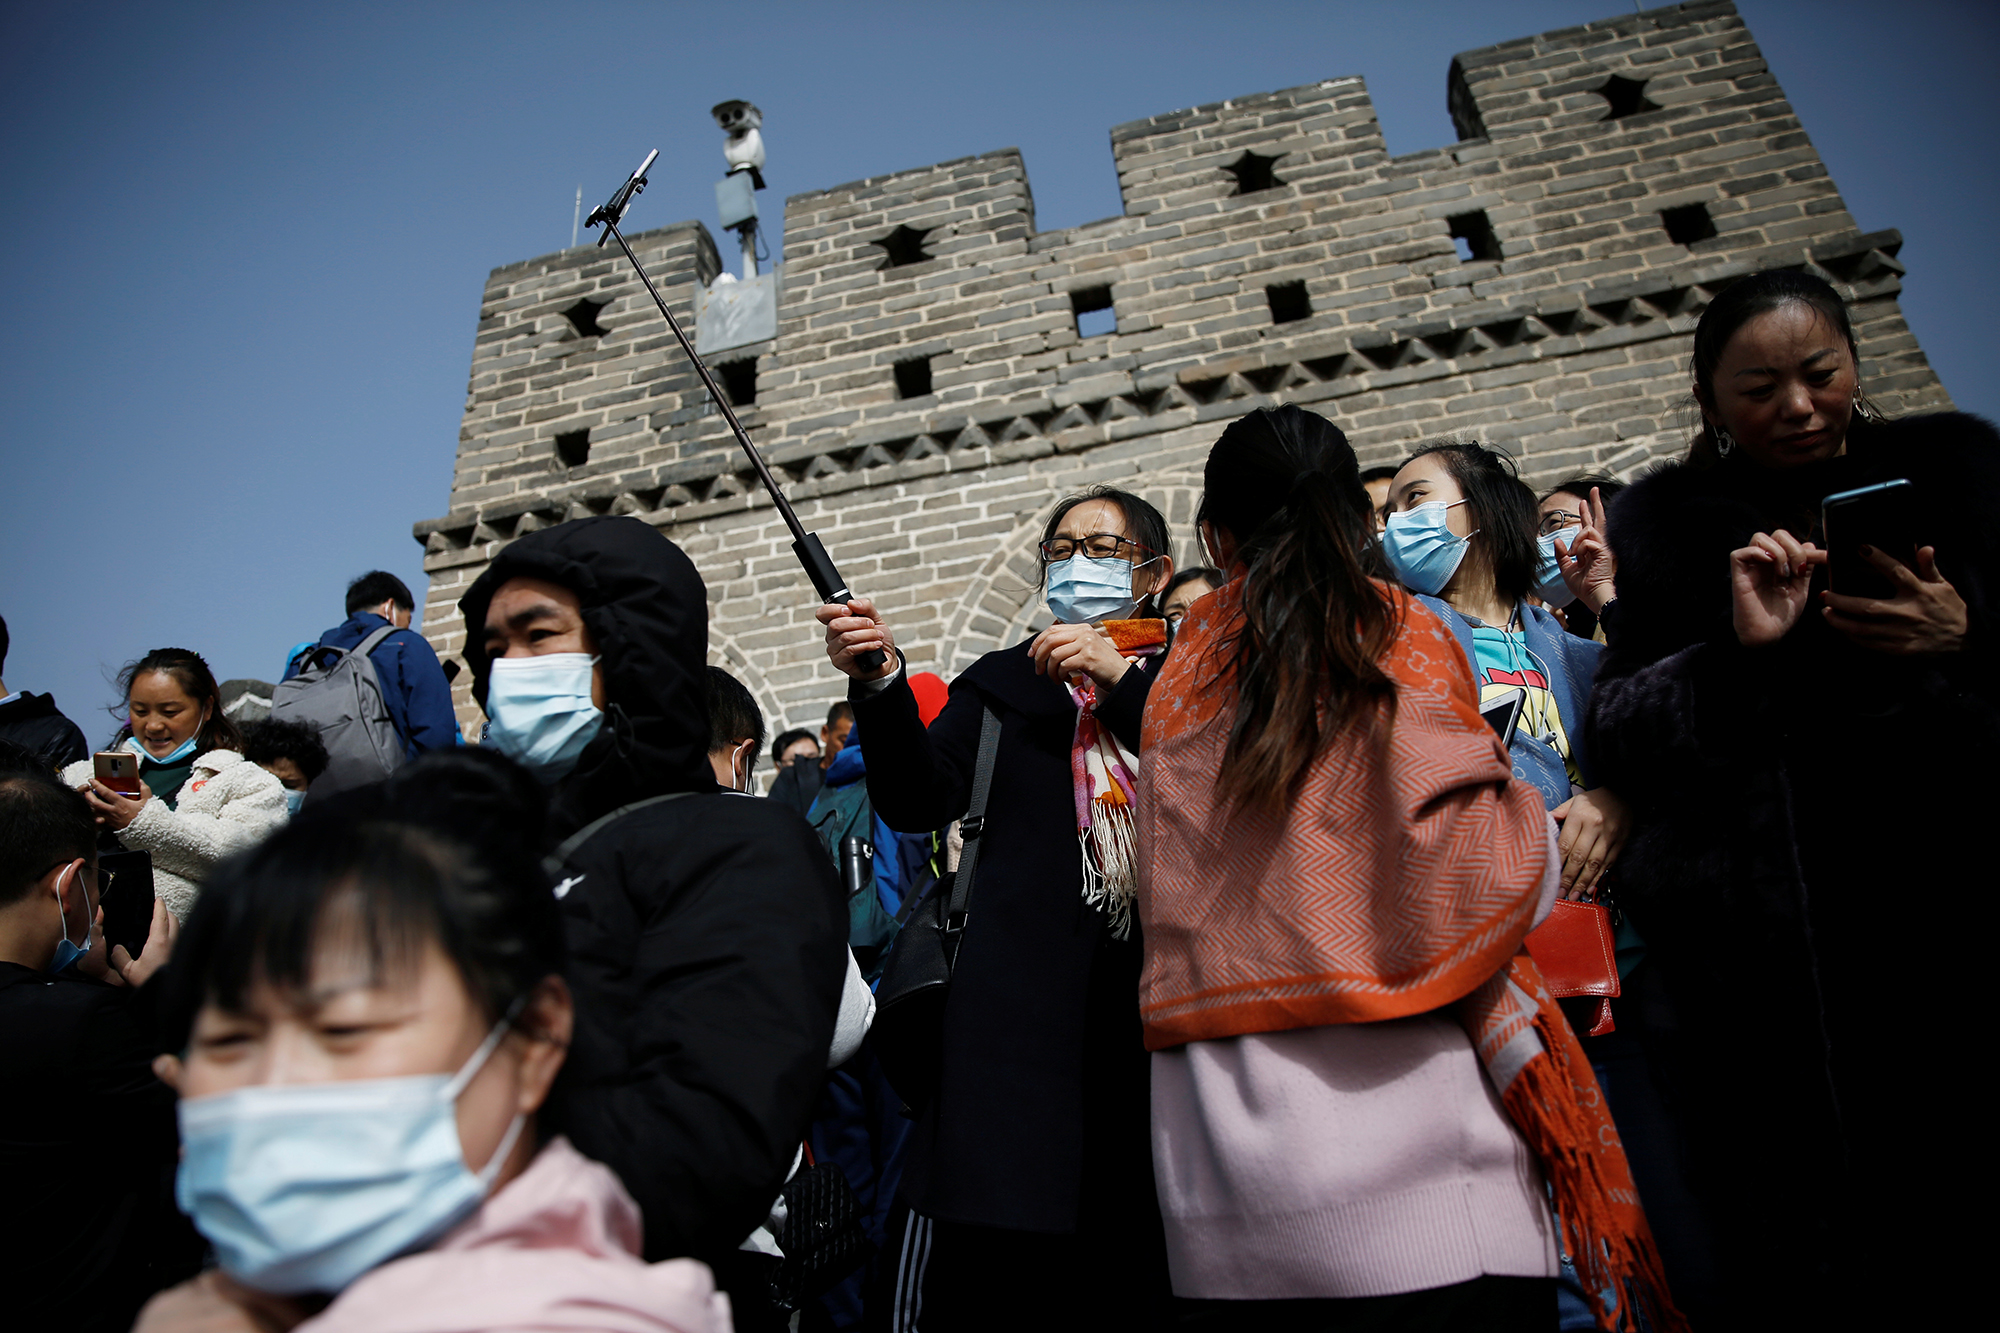 Visitors wearing masks, following the coronavirus disease (COVID-19) outbreak, are seen at the Badaling section of the Great Wall in Beijing, China